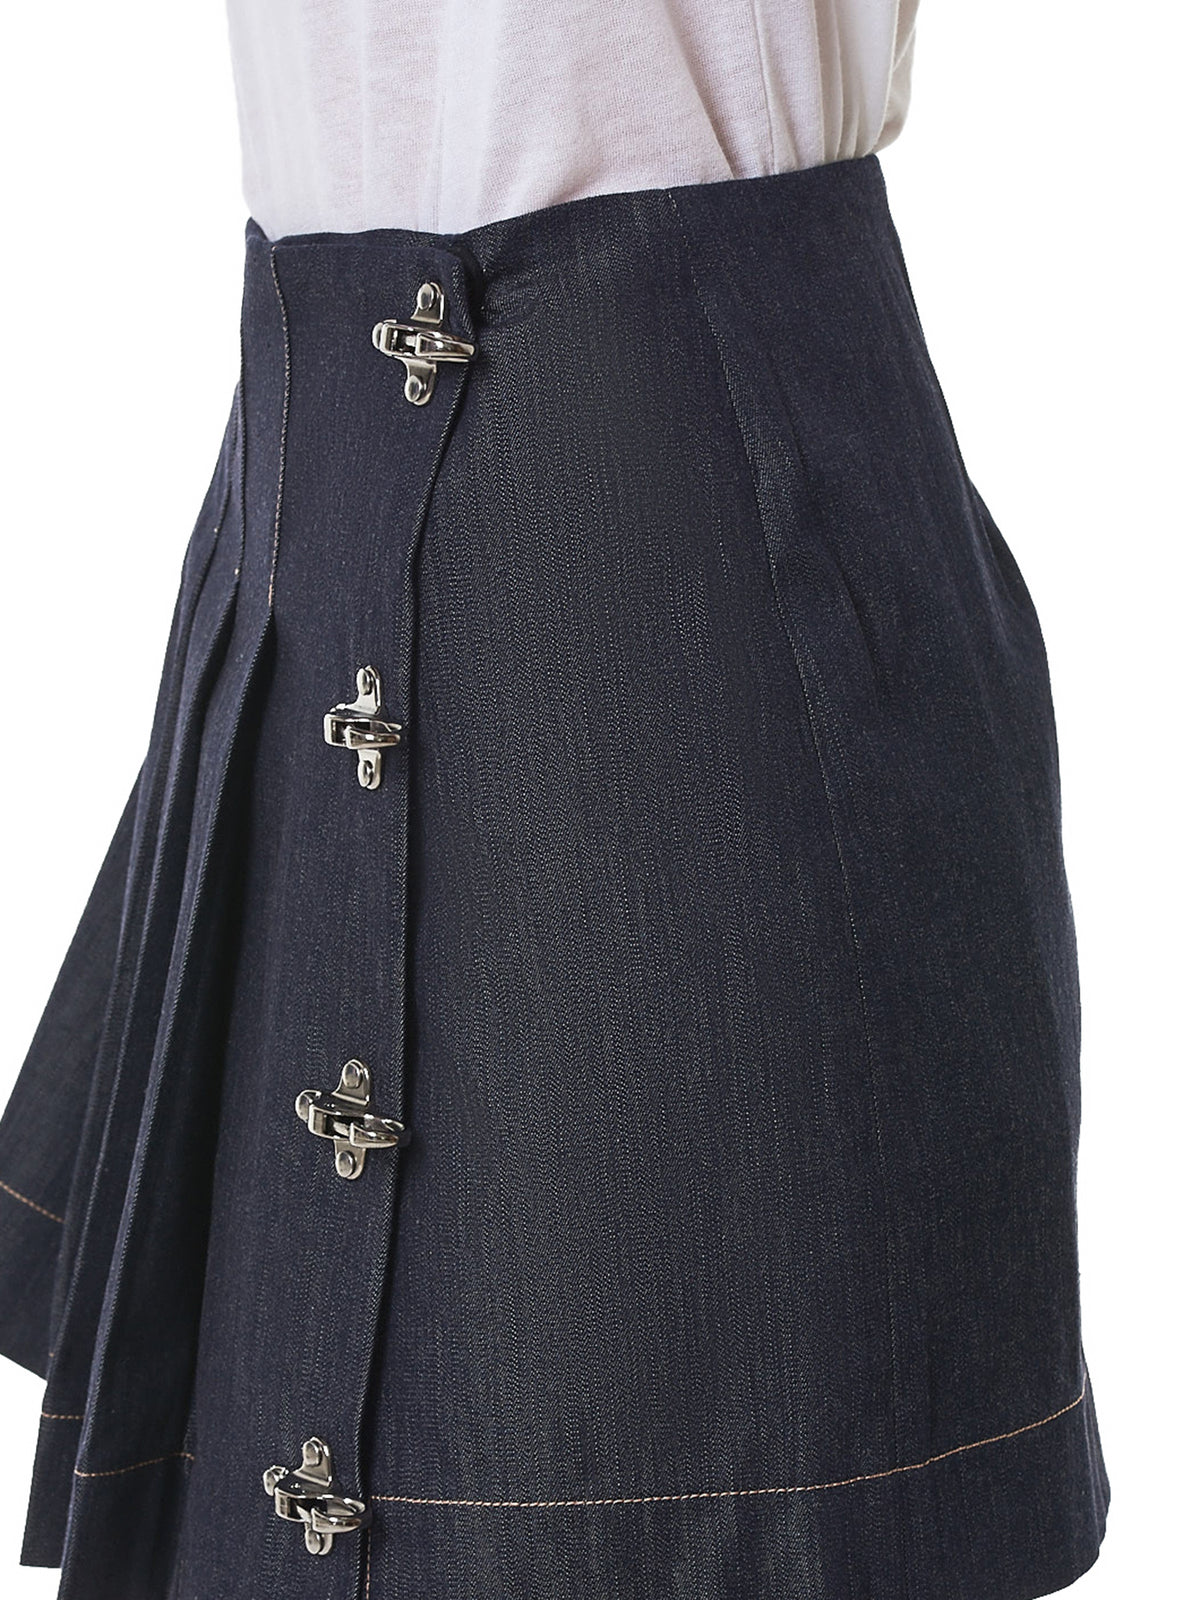 Rokh Denim Skirt - Hlorenzo detail 2